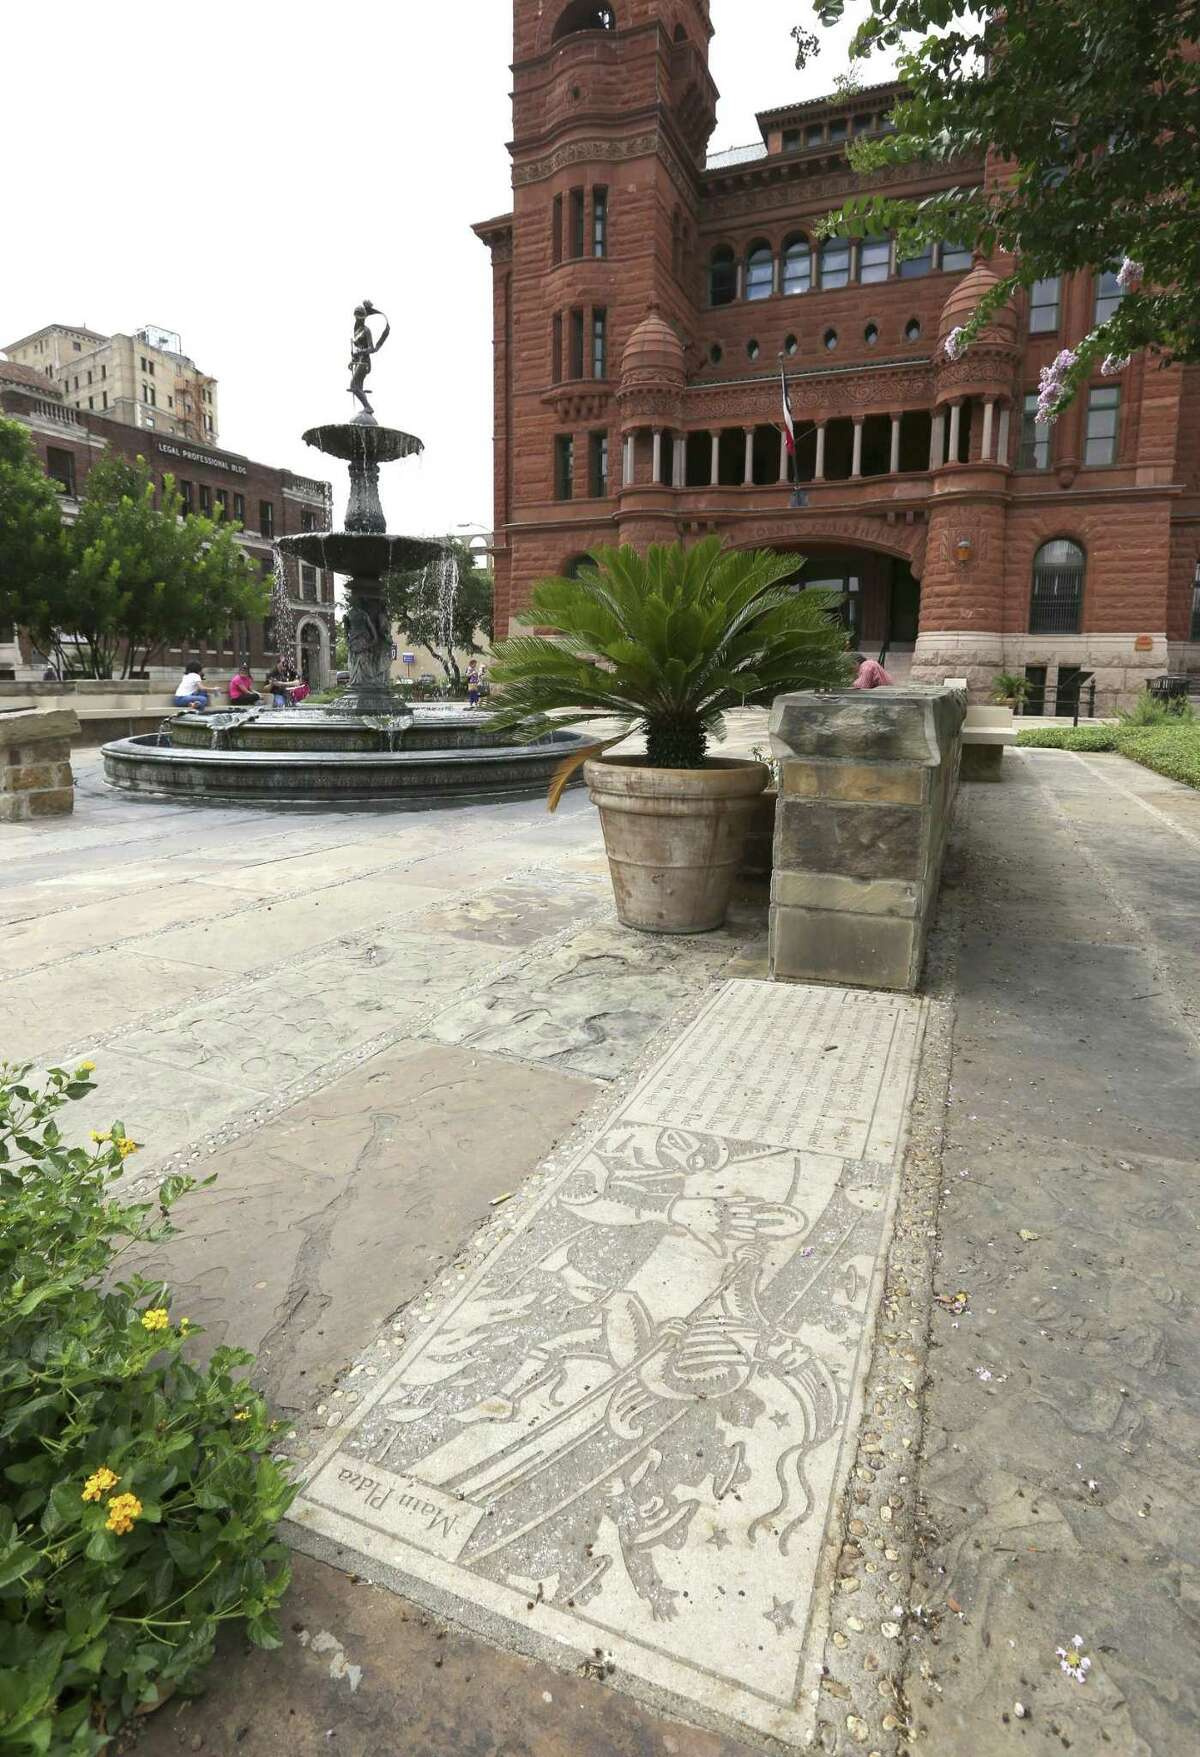 Engraved stones on the grounds of the Bexar County Courthouse, offer commentary, history.